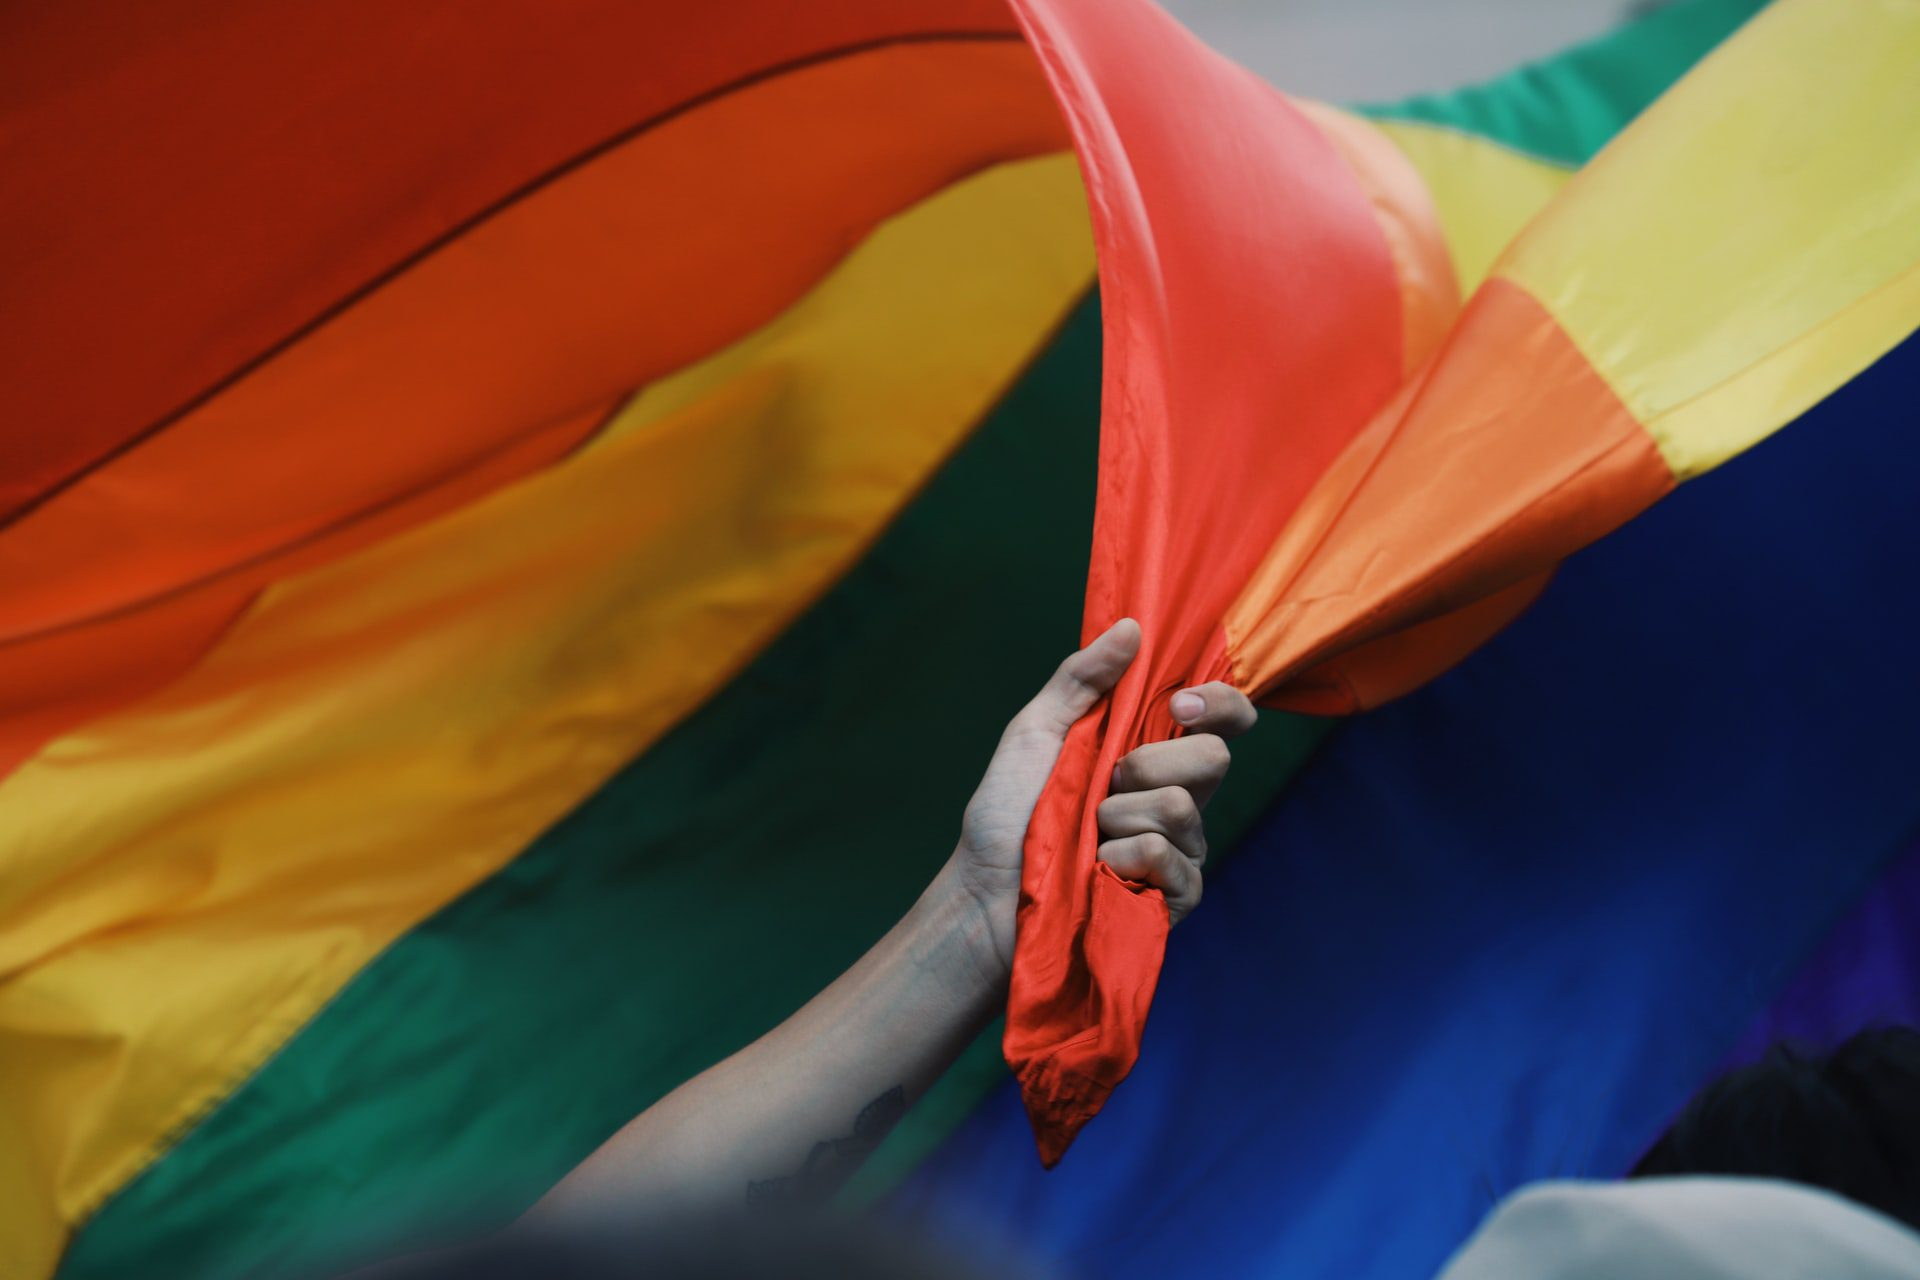 How do prisons protect the rights of LGBTQ+ prisoners?